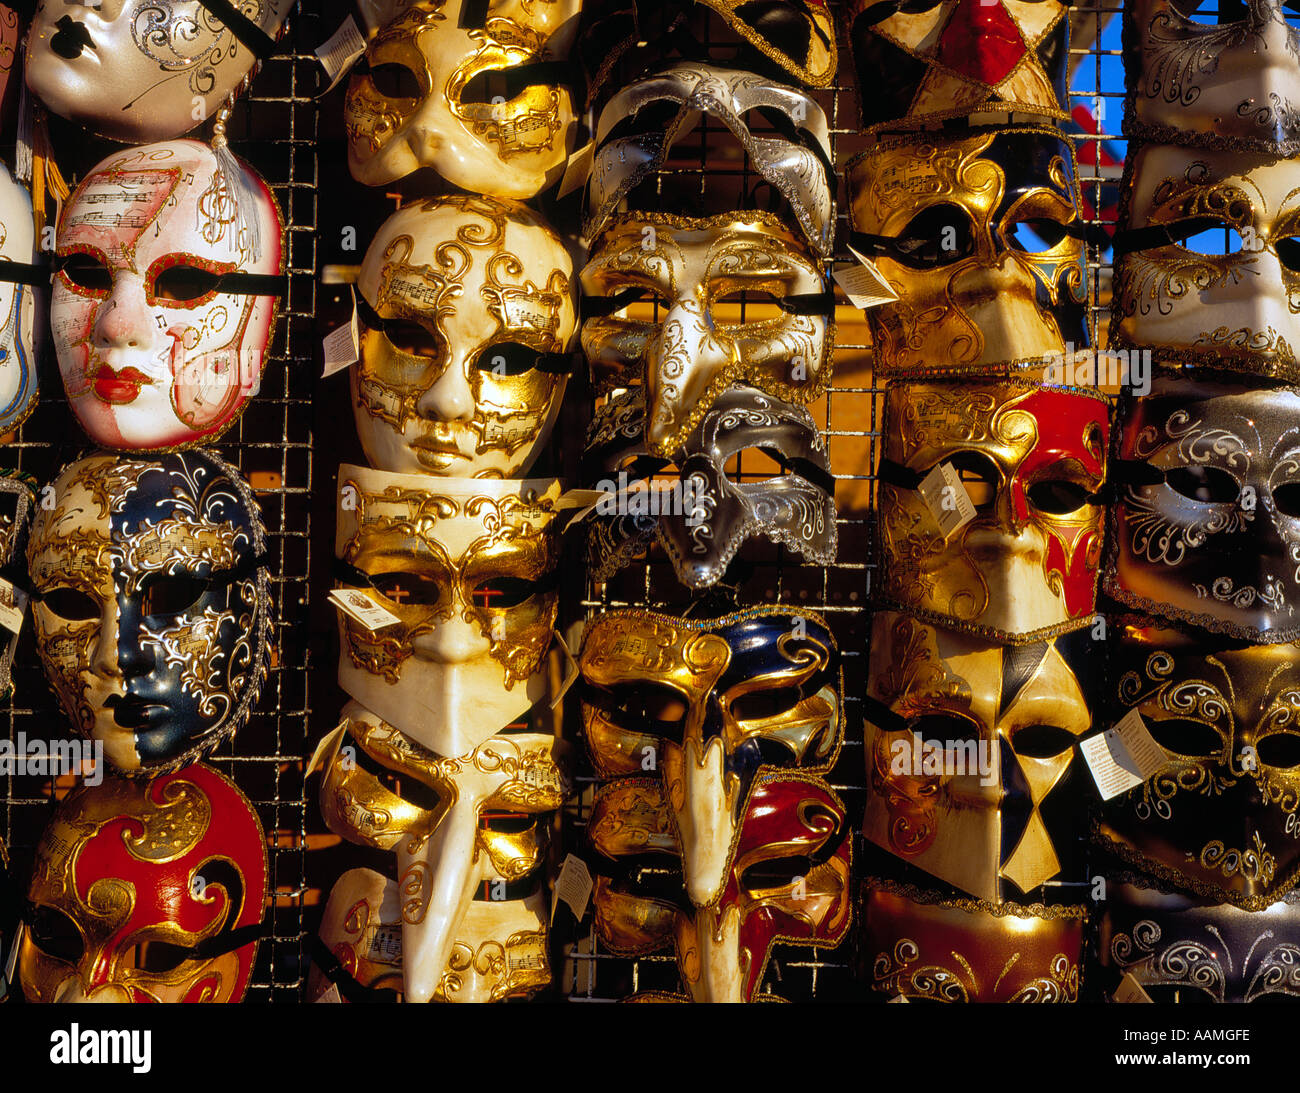 masks for sale at the  famous carnival of Venice, UNESCO World Heritage Site, Italy, Europe. Photo by Willy Matheisl - Stock Image